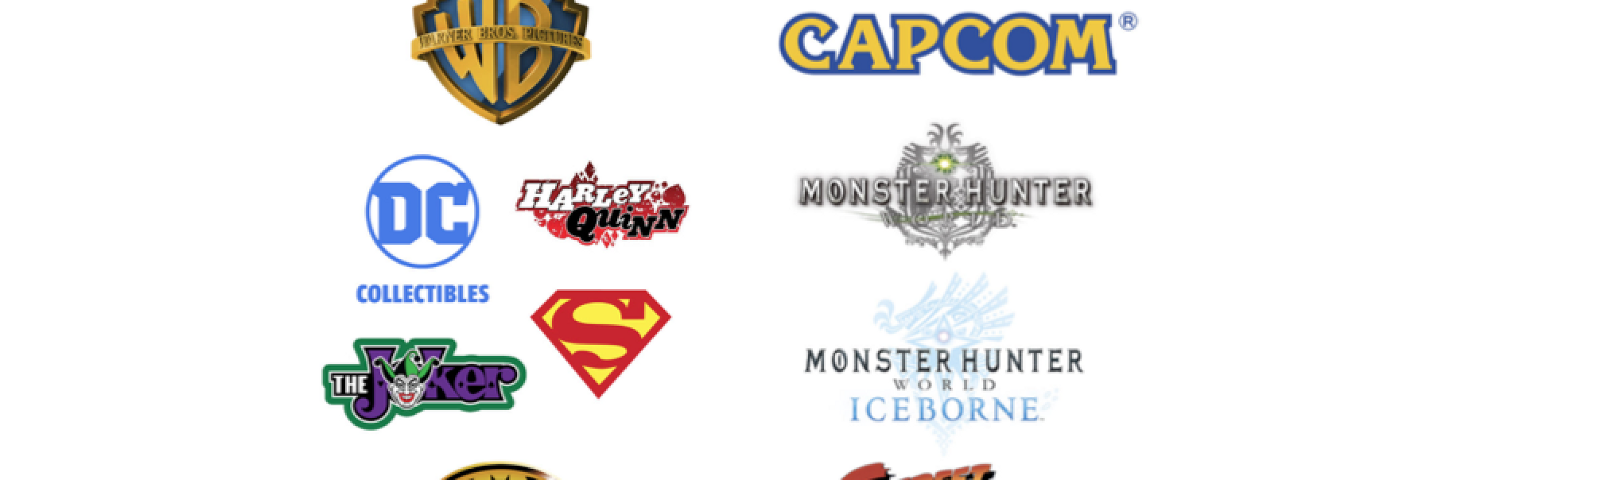 VE-VE announces Warner Brothers and Capcom digital collectibles